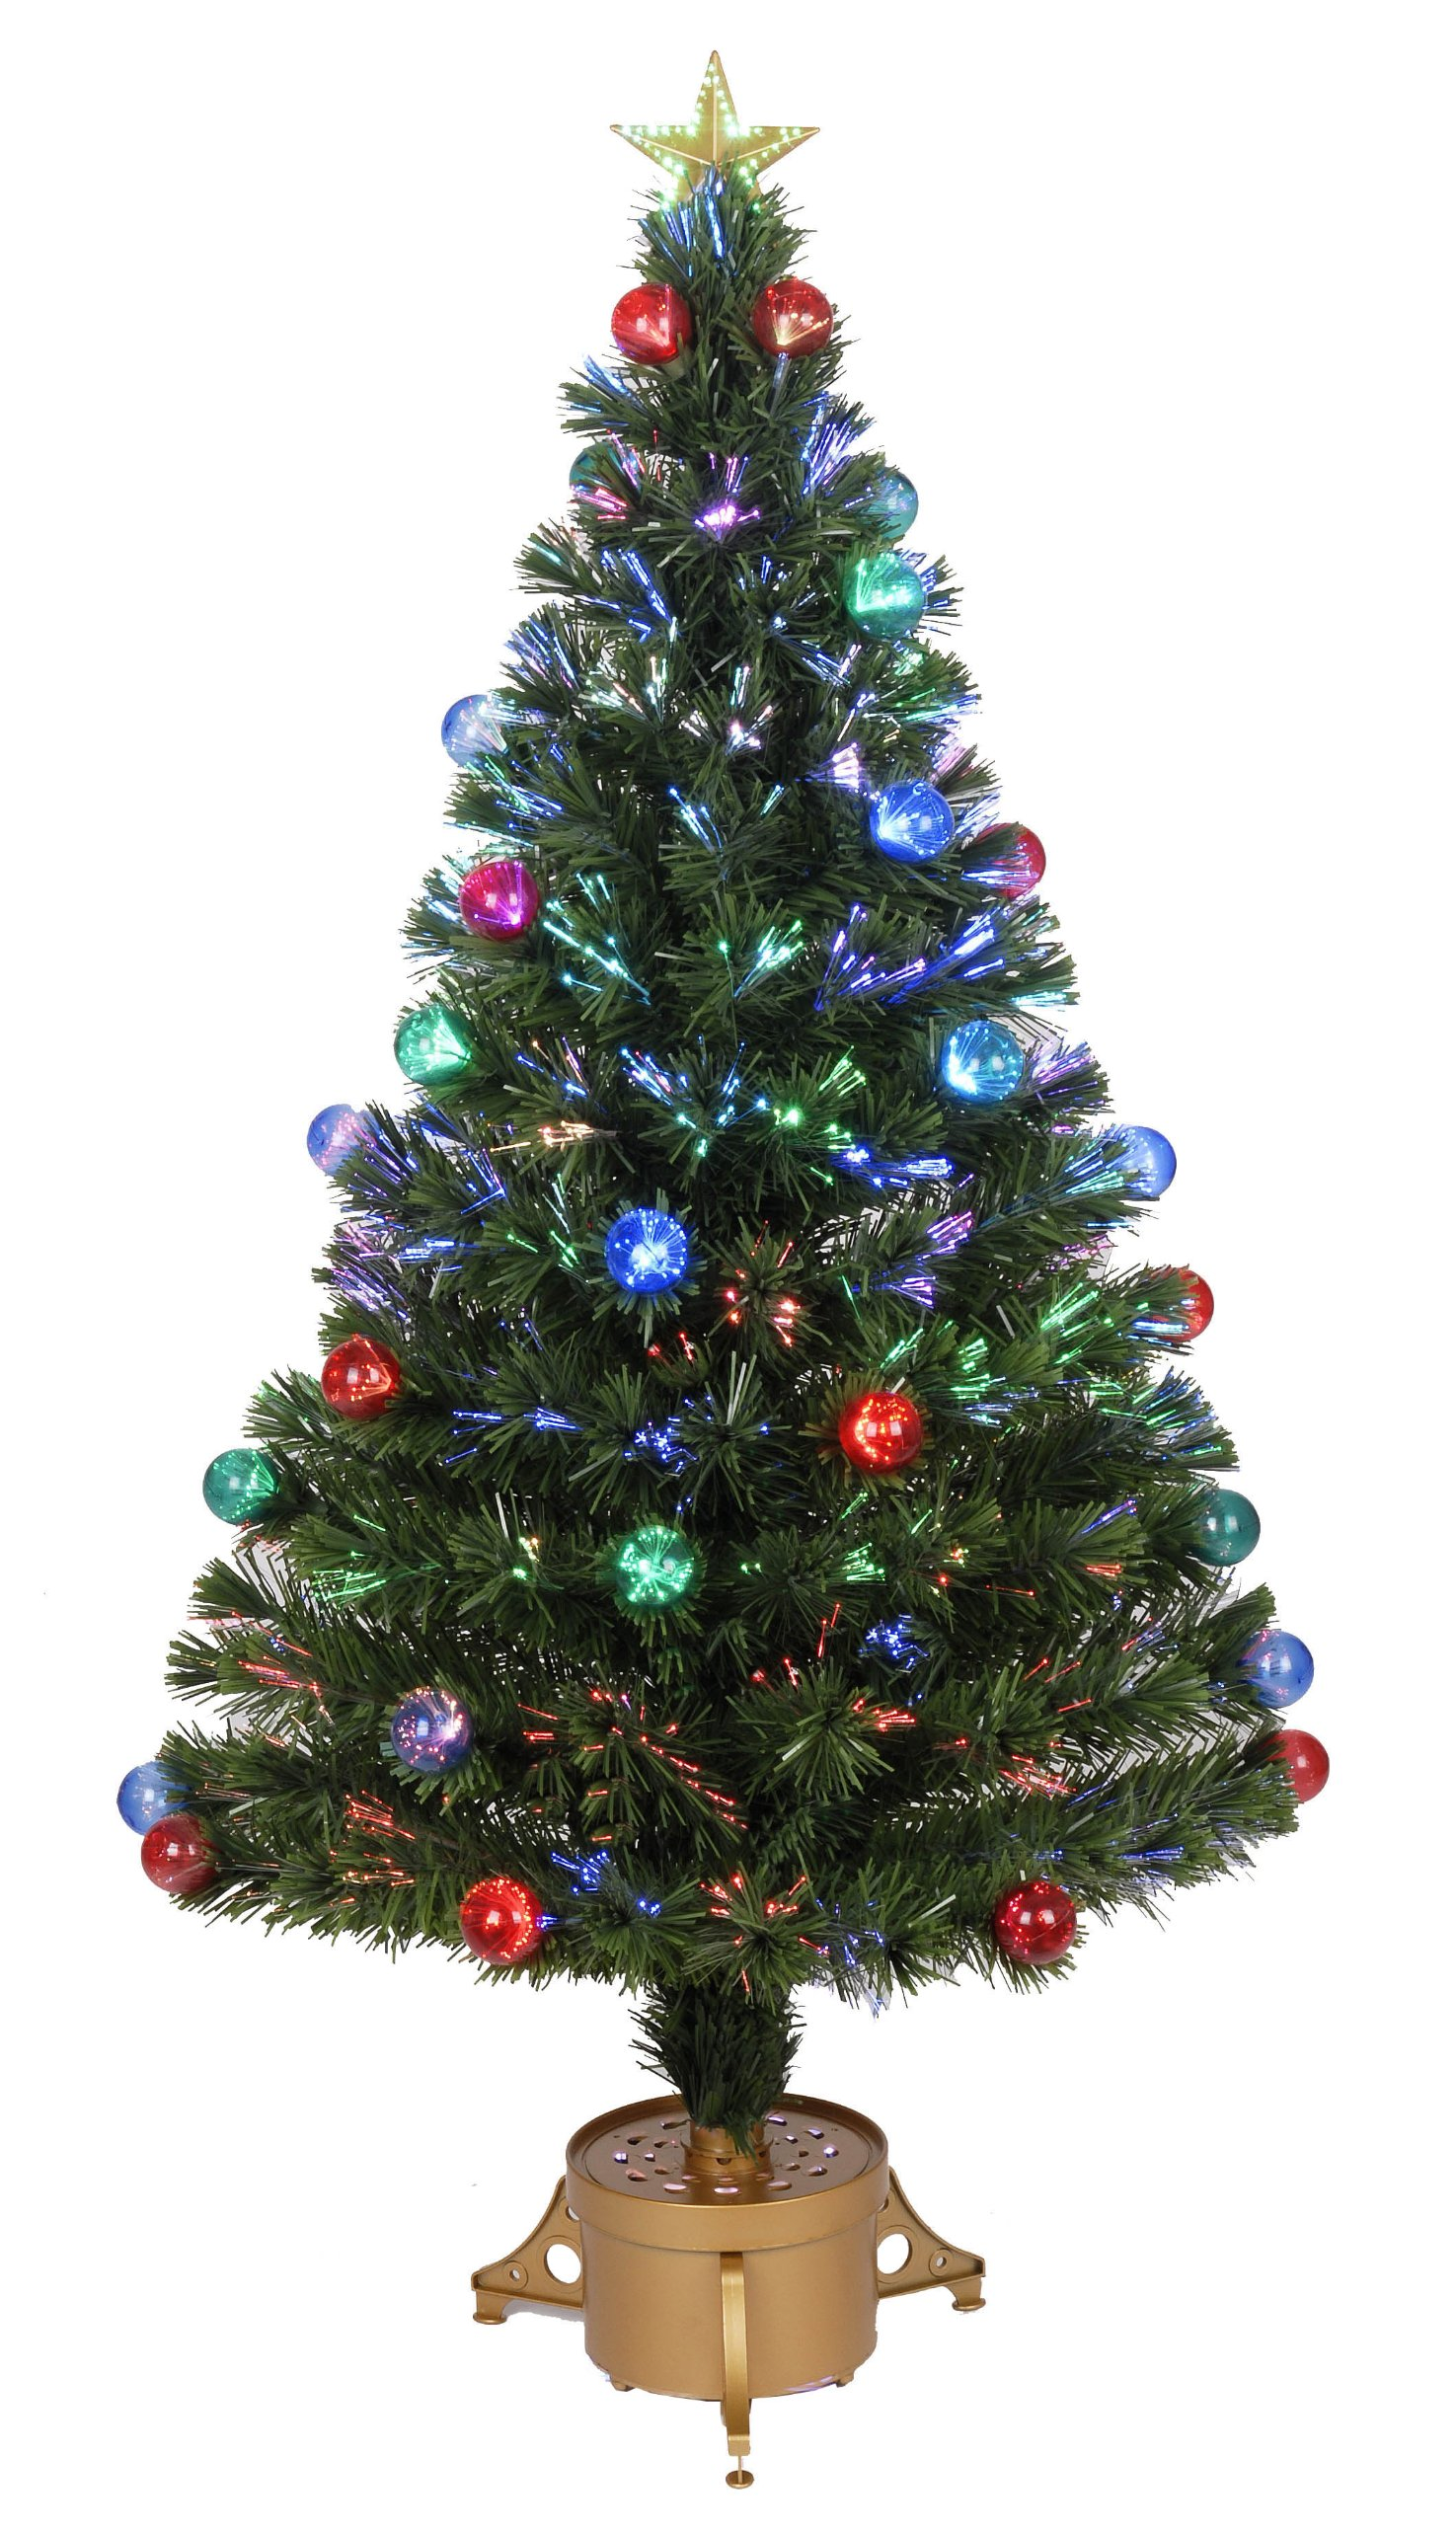 Jolly Workshop Multi-Color LED Fiber 165 Tips 14-Ply Optic Tree Top Star with Balls/Gold Base, 48-Inch